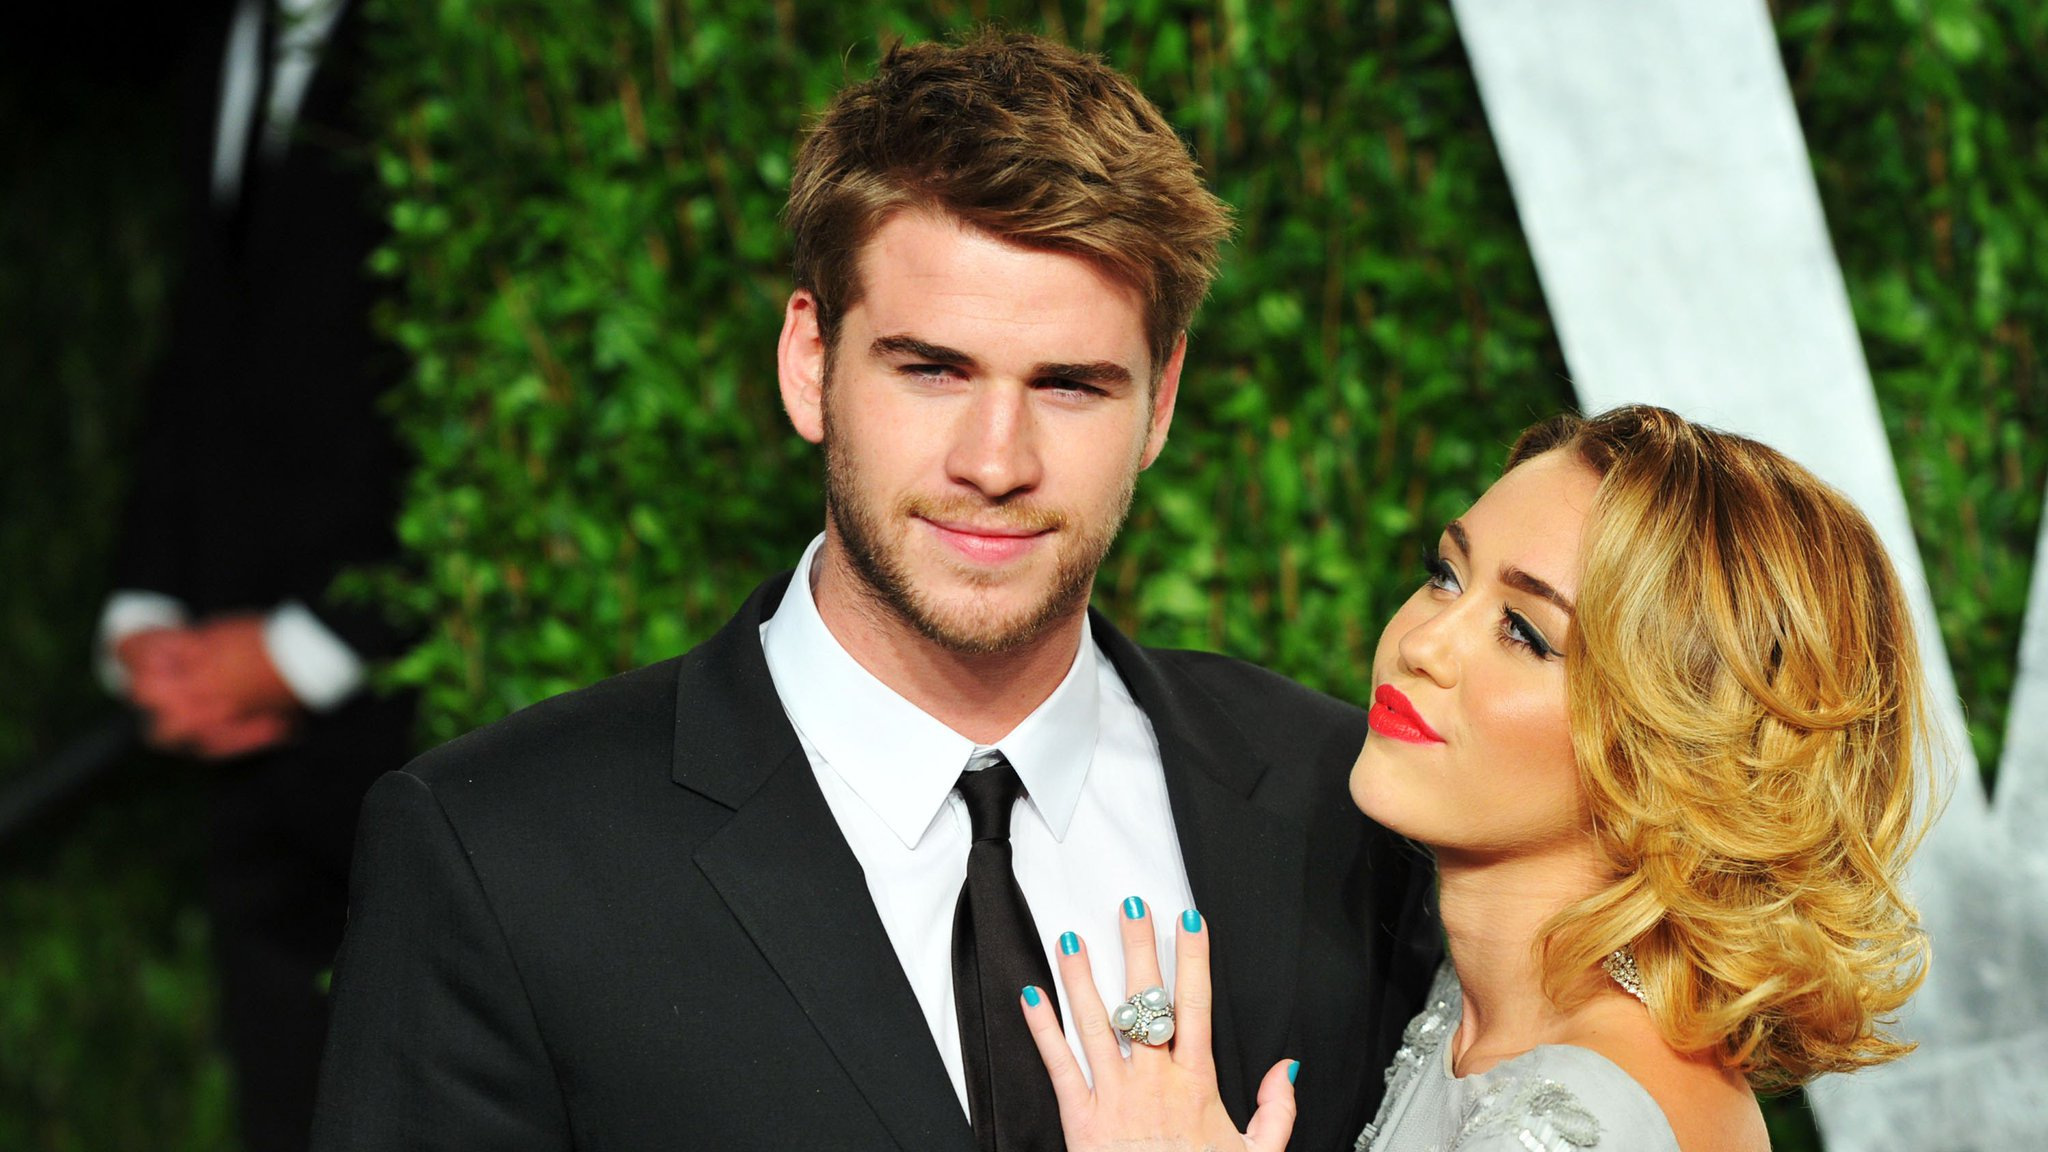 Miley Cyrus just posted a subtle tribute to her music muse Liam Hemsworth: https://t.co/Ol3iAzNWQg https://t.co/R7CfyRbTSY